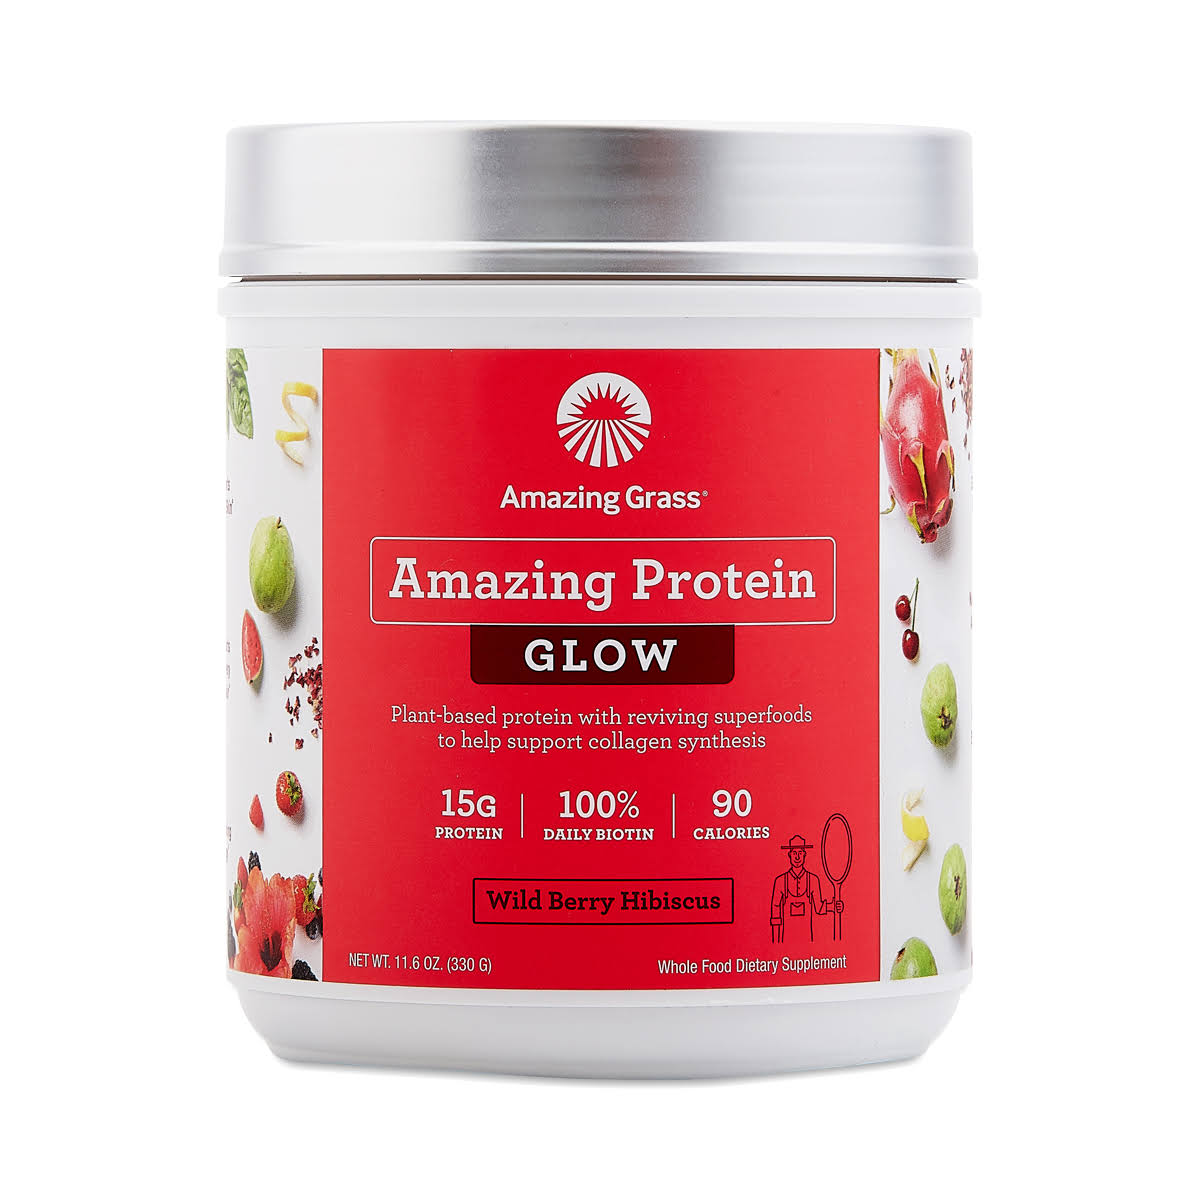 Amazing Grass Amazing Protein Powder - Glow, Wild Berry Hibiscus, 11.6oz